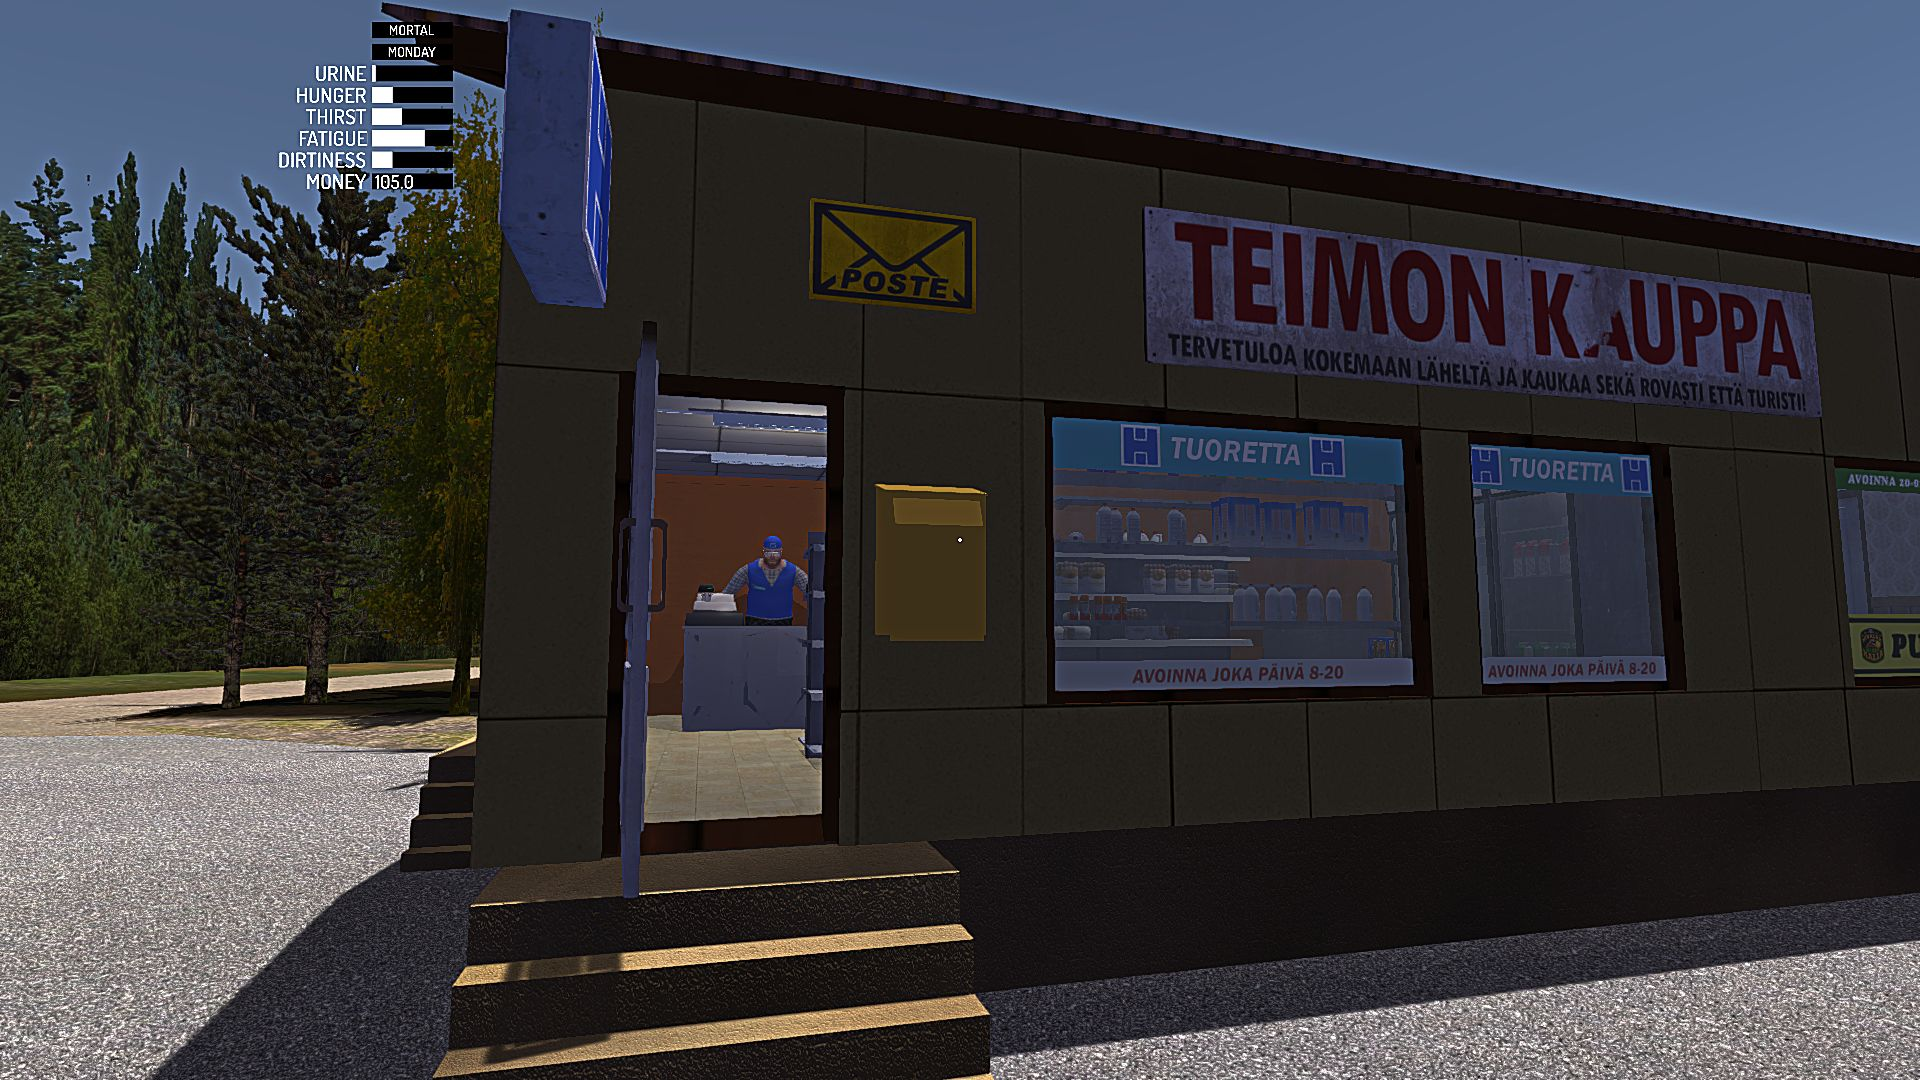 My Summer Car Guide The Most Fun Way to Find The Shop